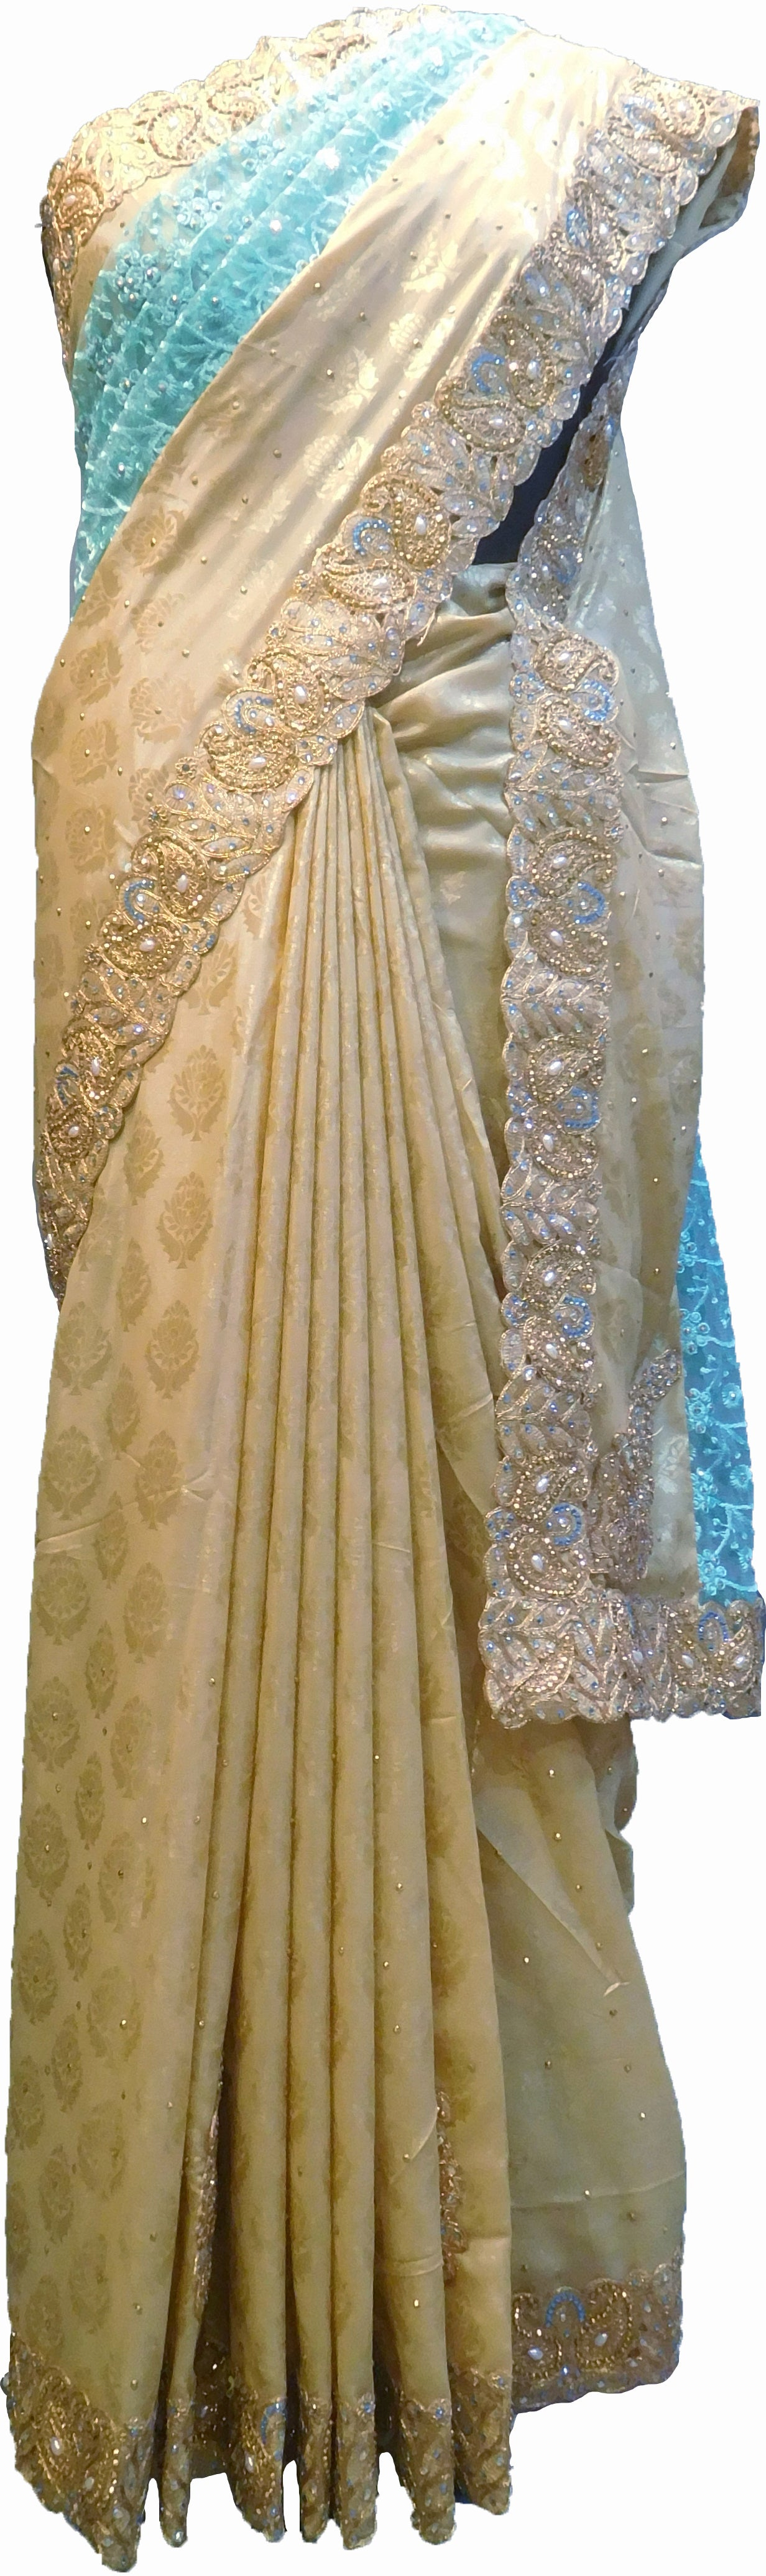 SMSAREE Turquoise & Cream Designer Wedding Partywear Brasso & Net Zari Thread Pearl & Stone Hand Embroidery Work Bridal Saree Sari With Blouse Piece F204